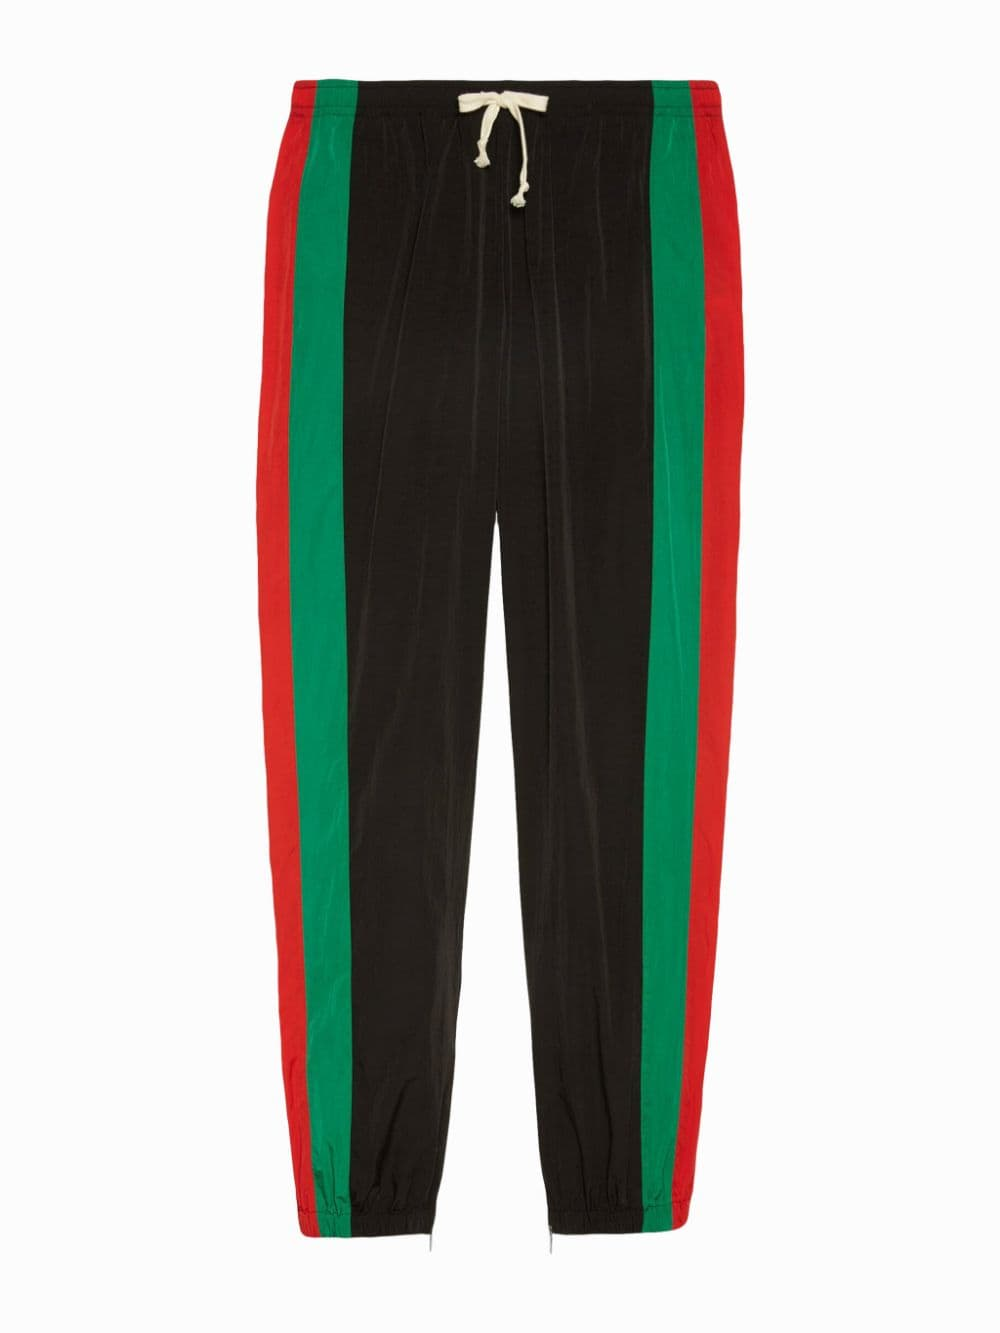 unisex lightweight nylon black, green and red jogging pants with loose silhouette GUCCI |  | 575549-XJBAK1060